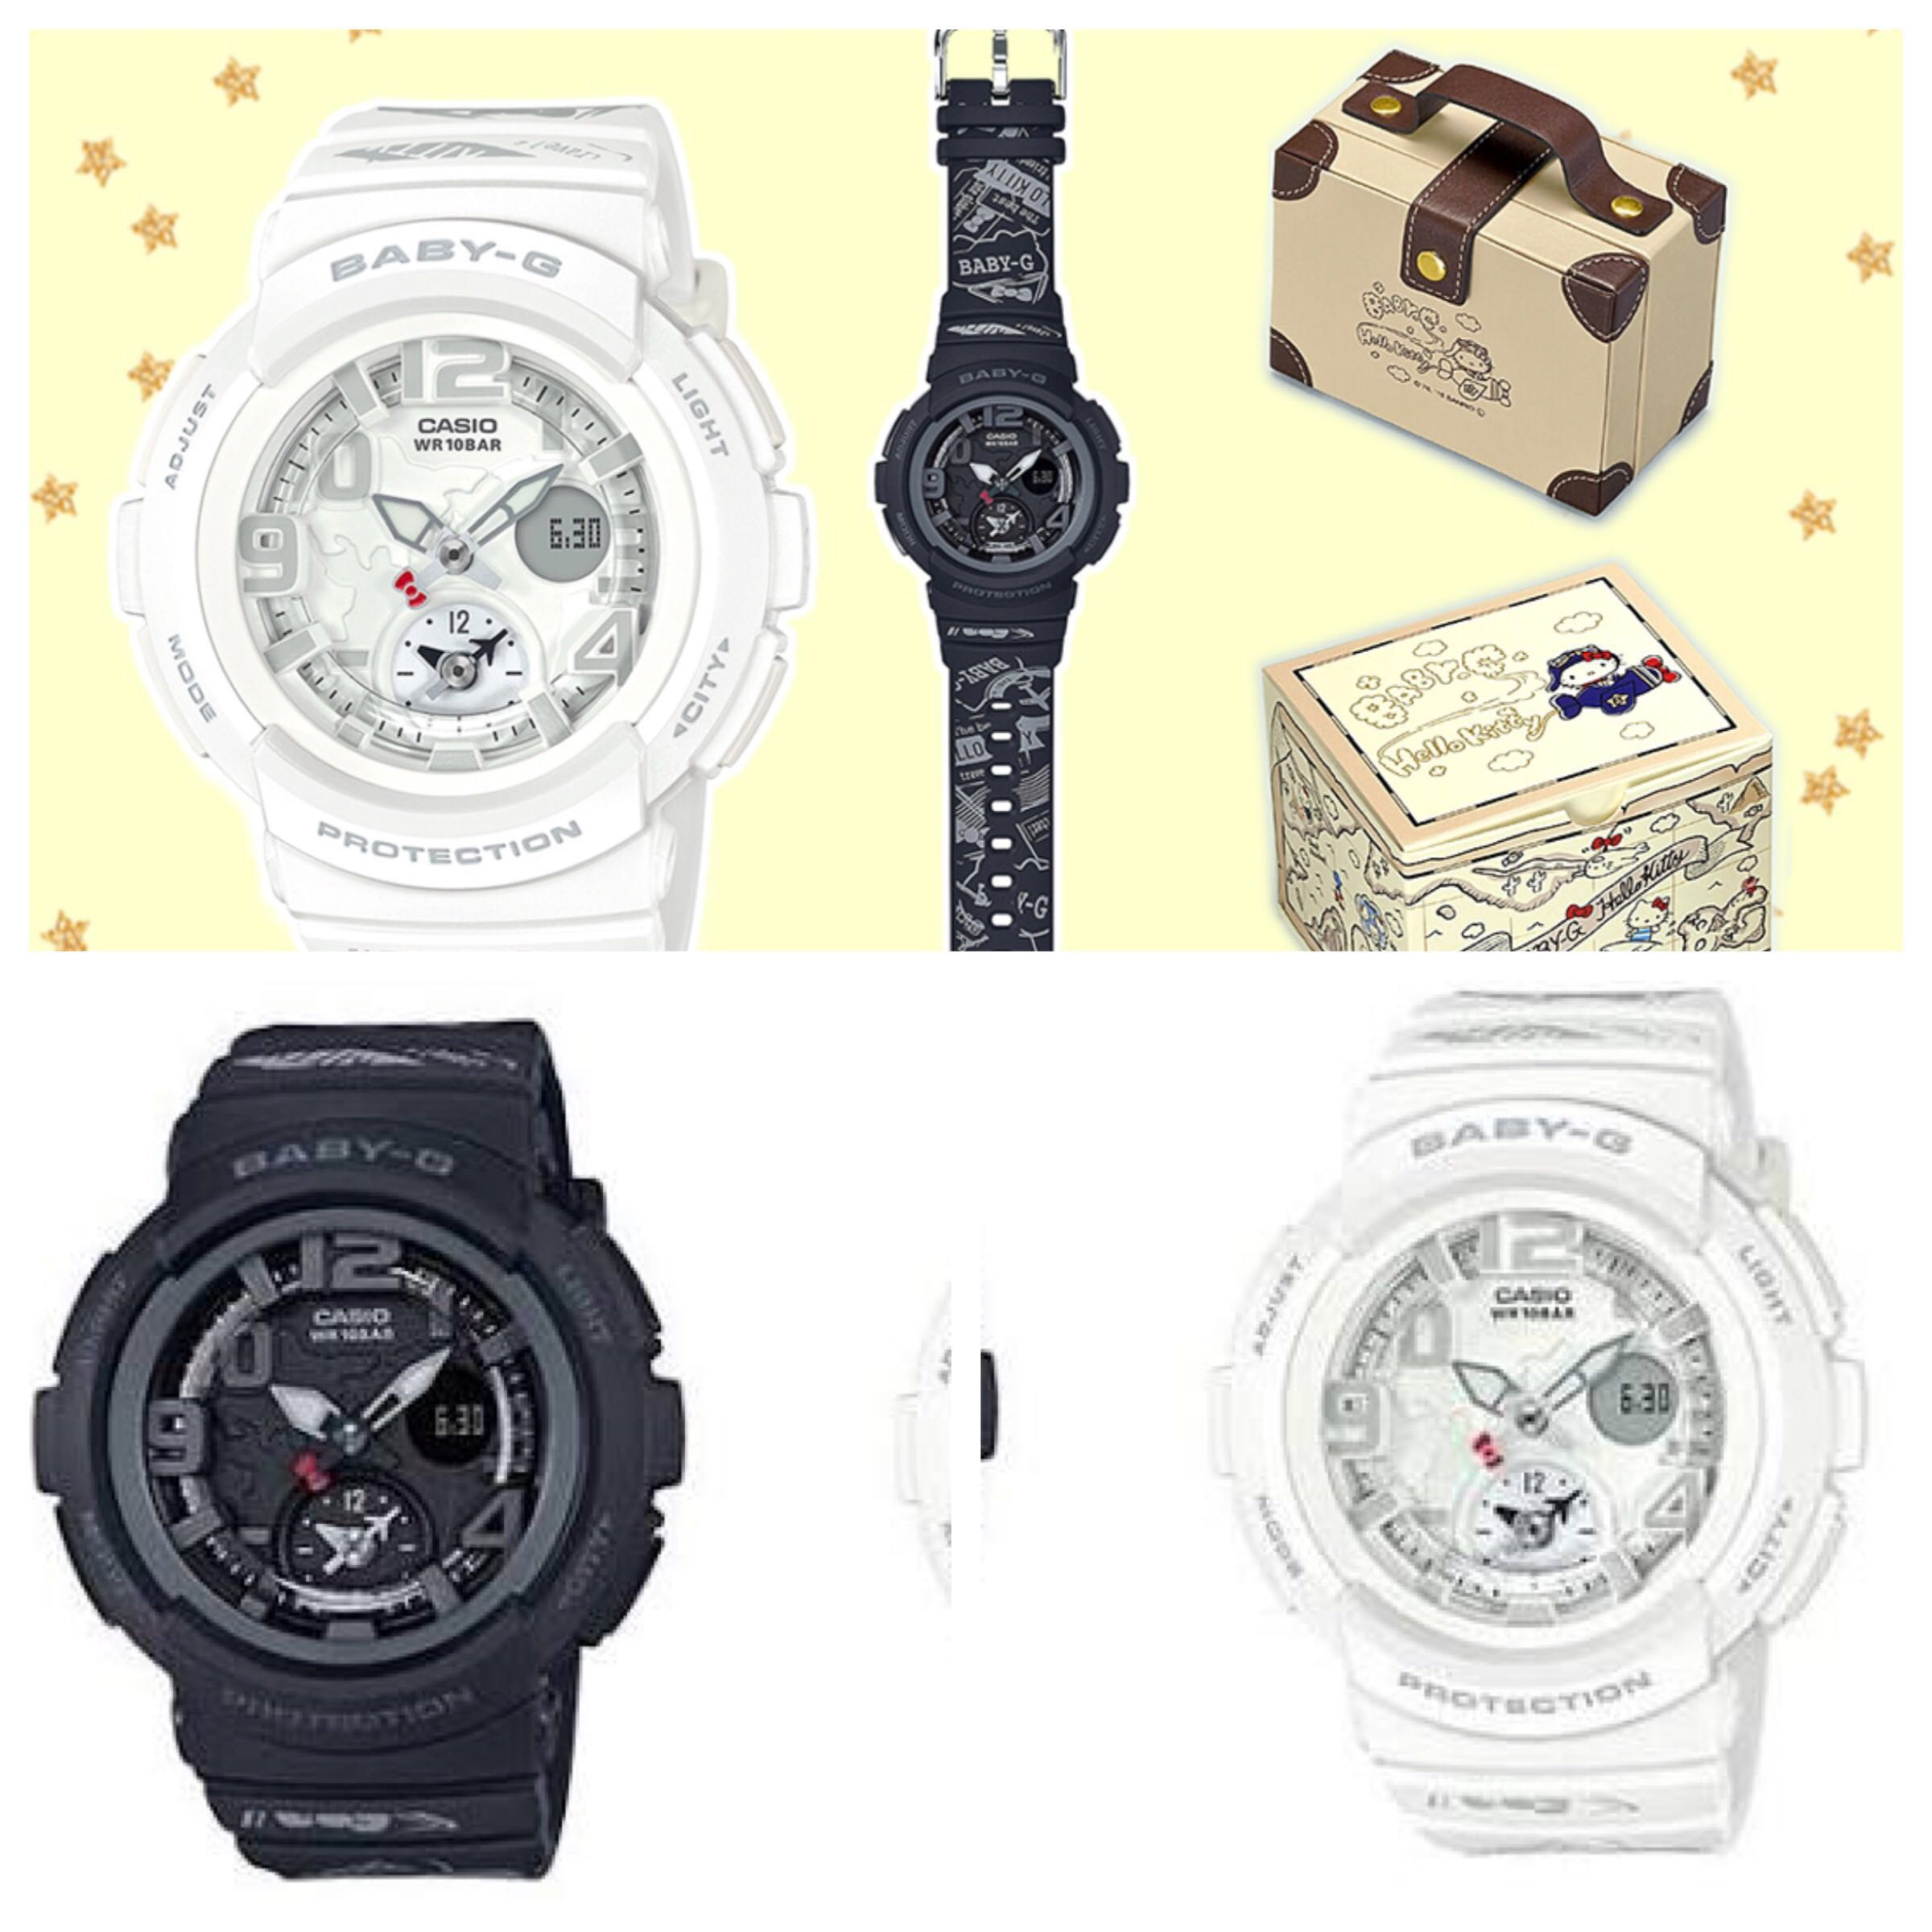 51e9f7538 Hello kitty 2018 baby g watch (Limited Edition) JAPAN, Women's Fashion, Watches  on Carousell